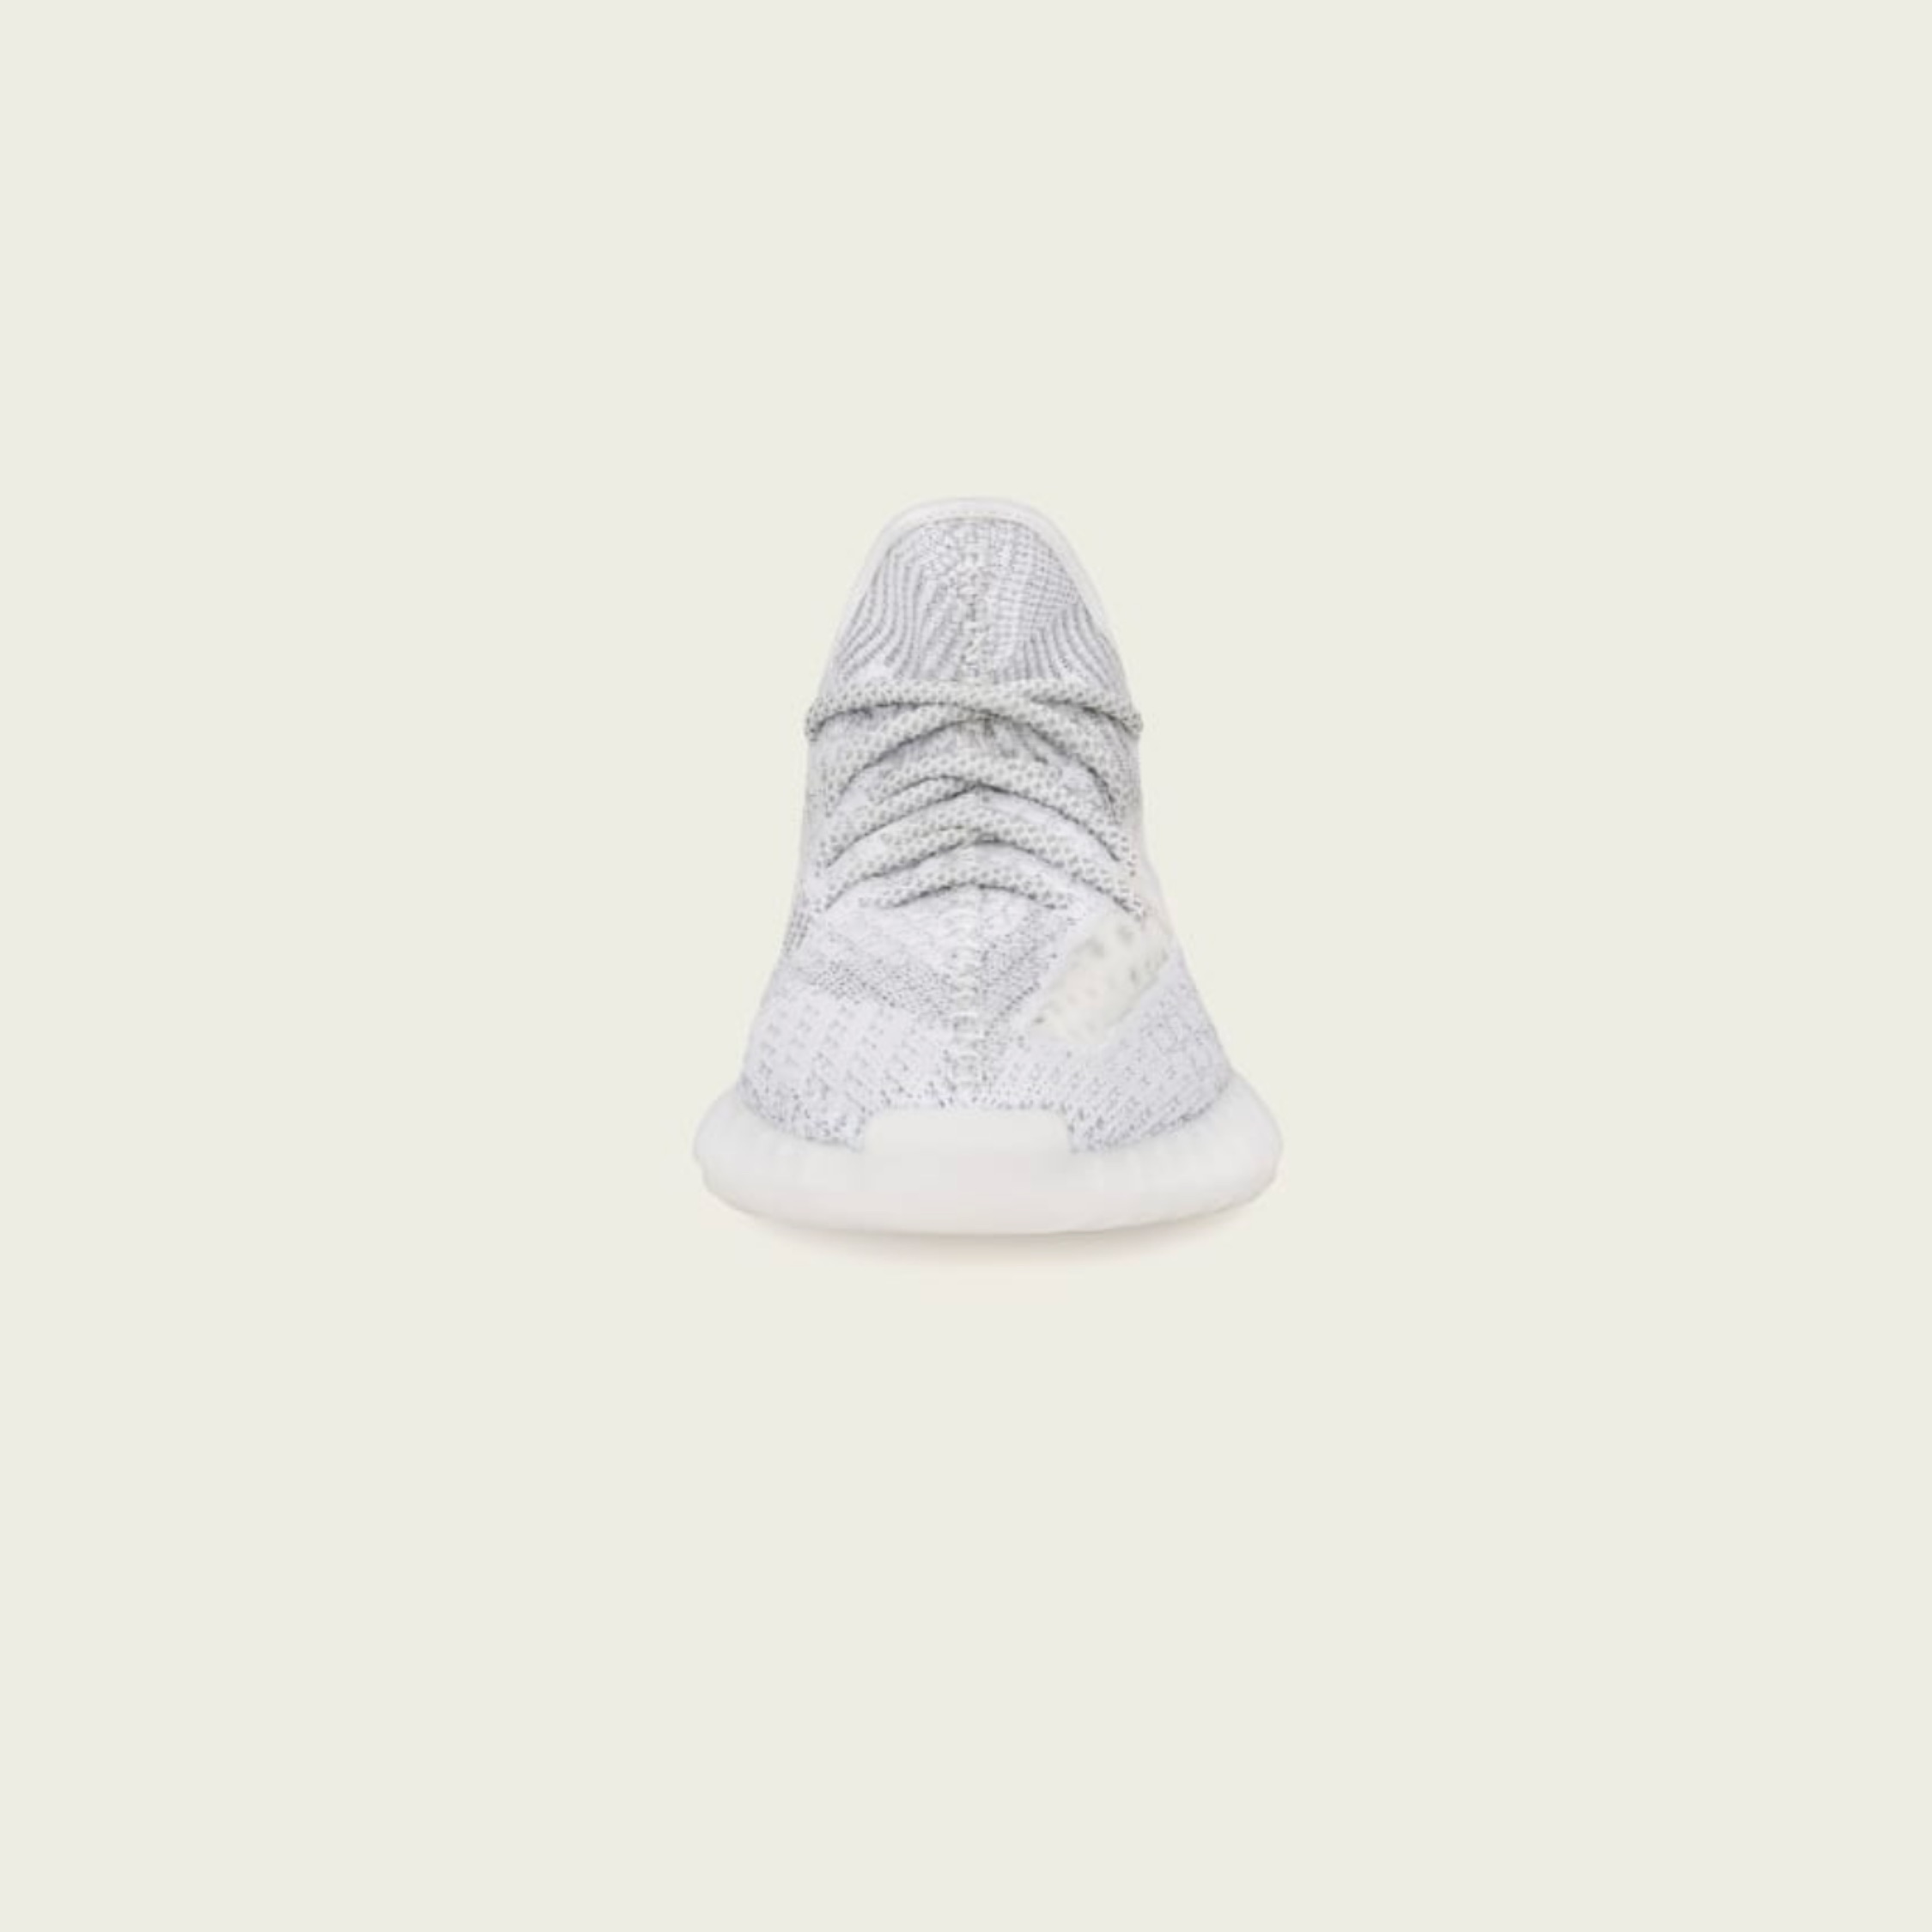 8e6504ab76c72 Yeezy Boost 350 V2 Static Non-Reflective Size 4.5